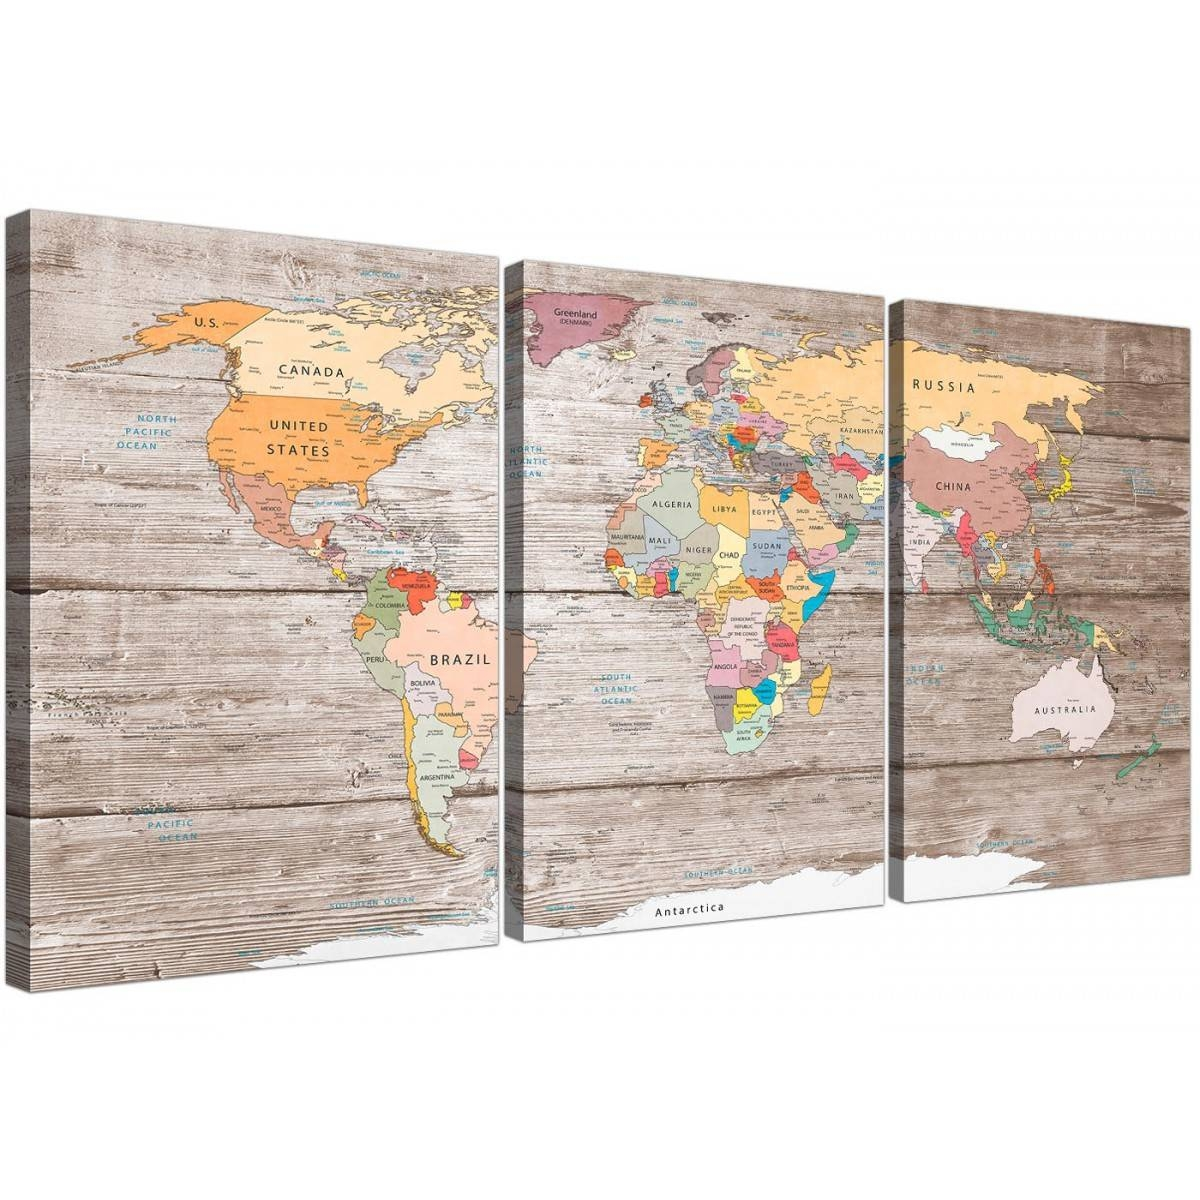 Large Decorative Map Of World Atlas Canvas Wall Art Print Multi 3 Within Latest Atlas Wall Art (View 7 of 20)